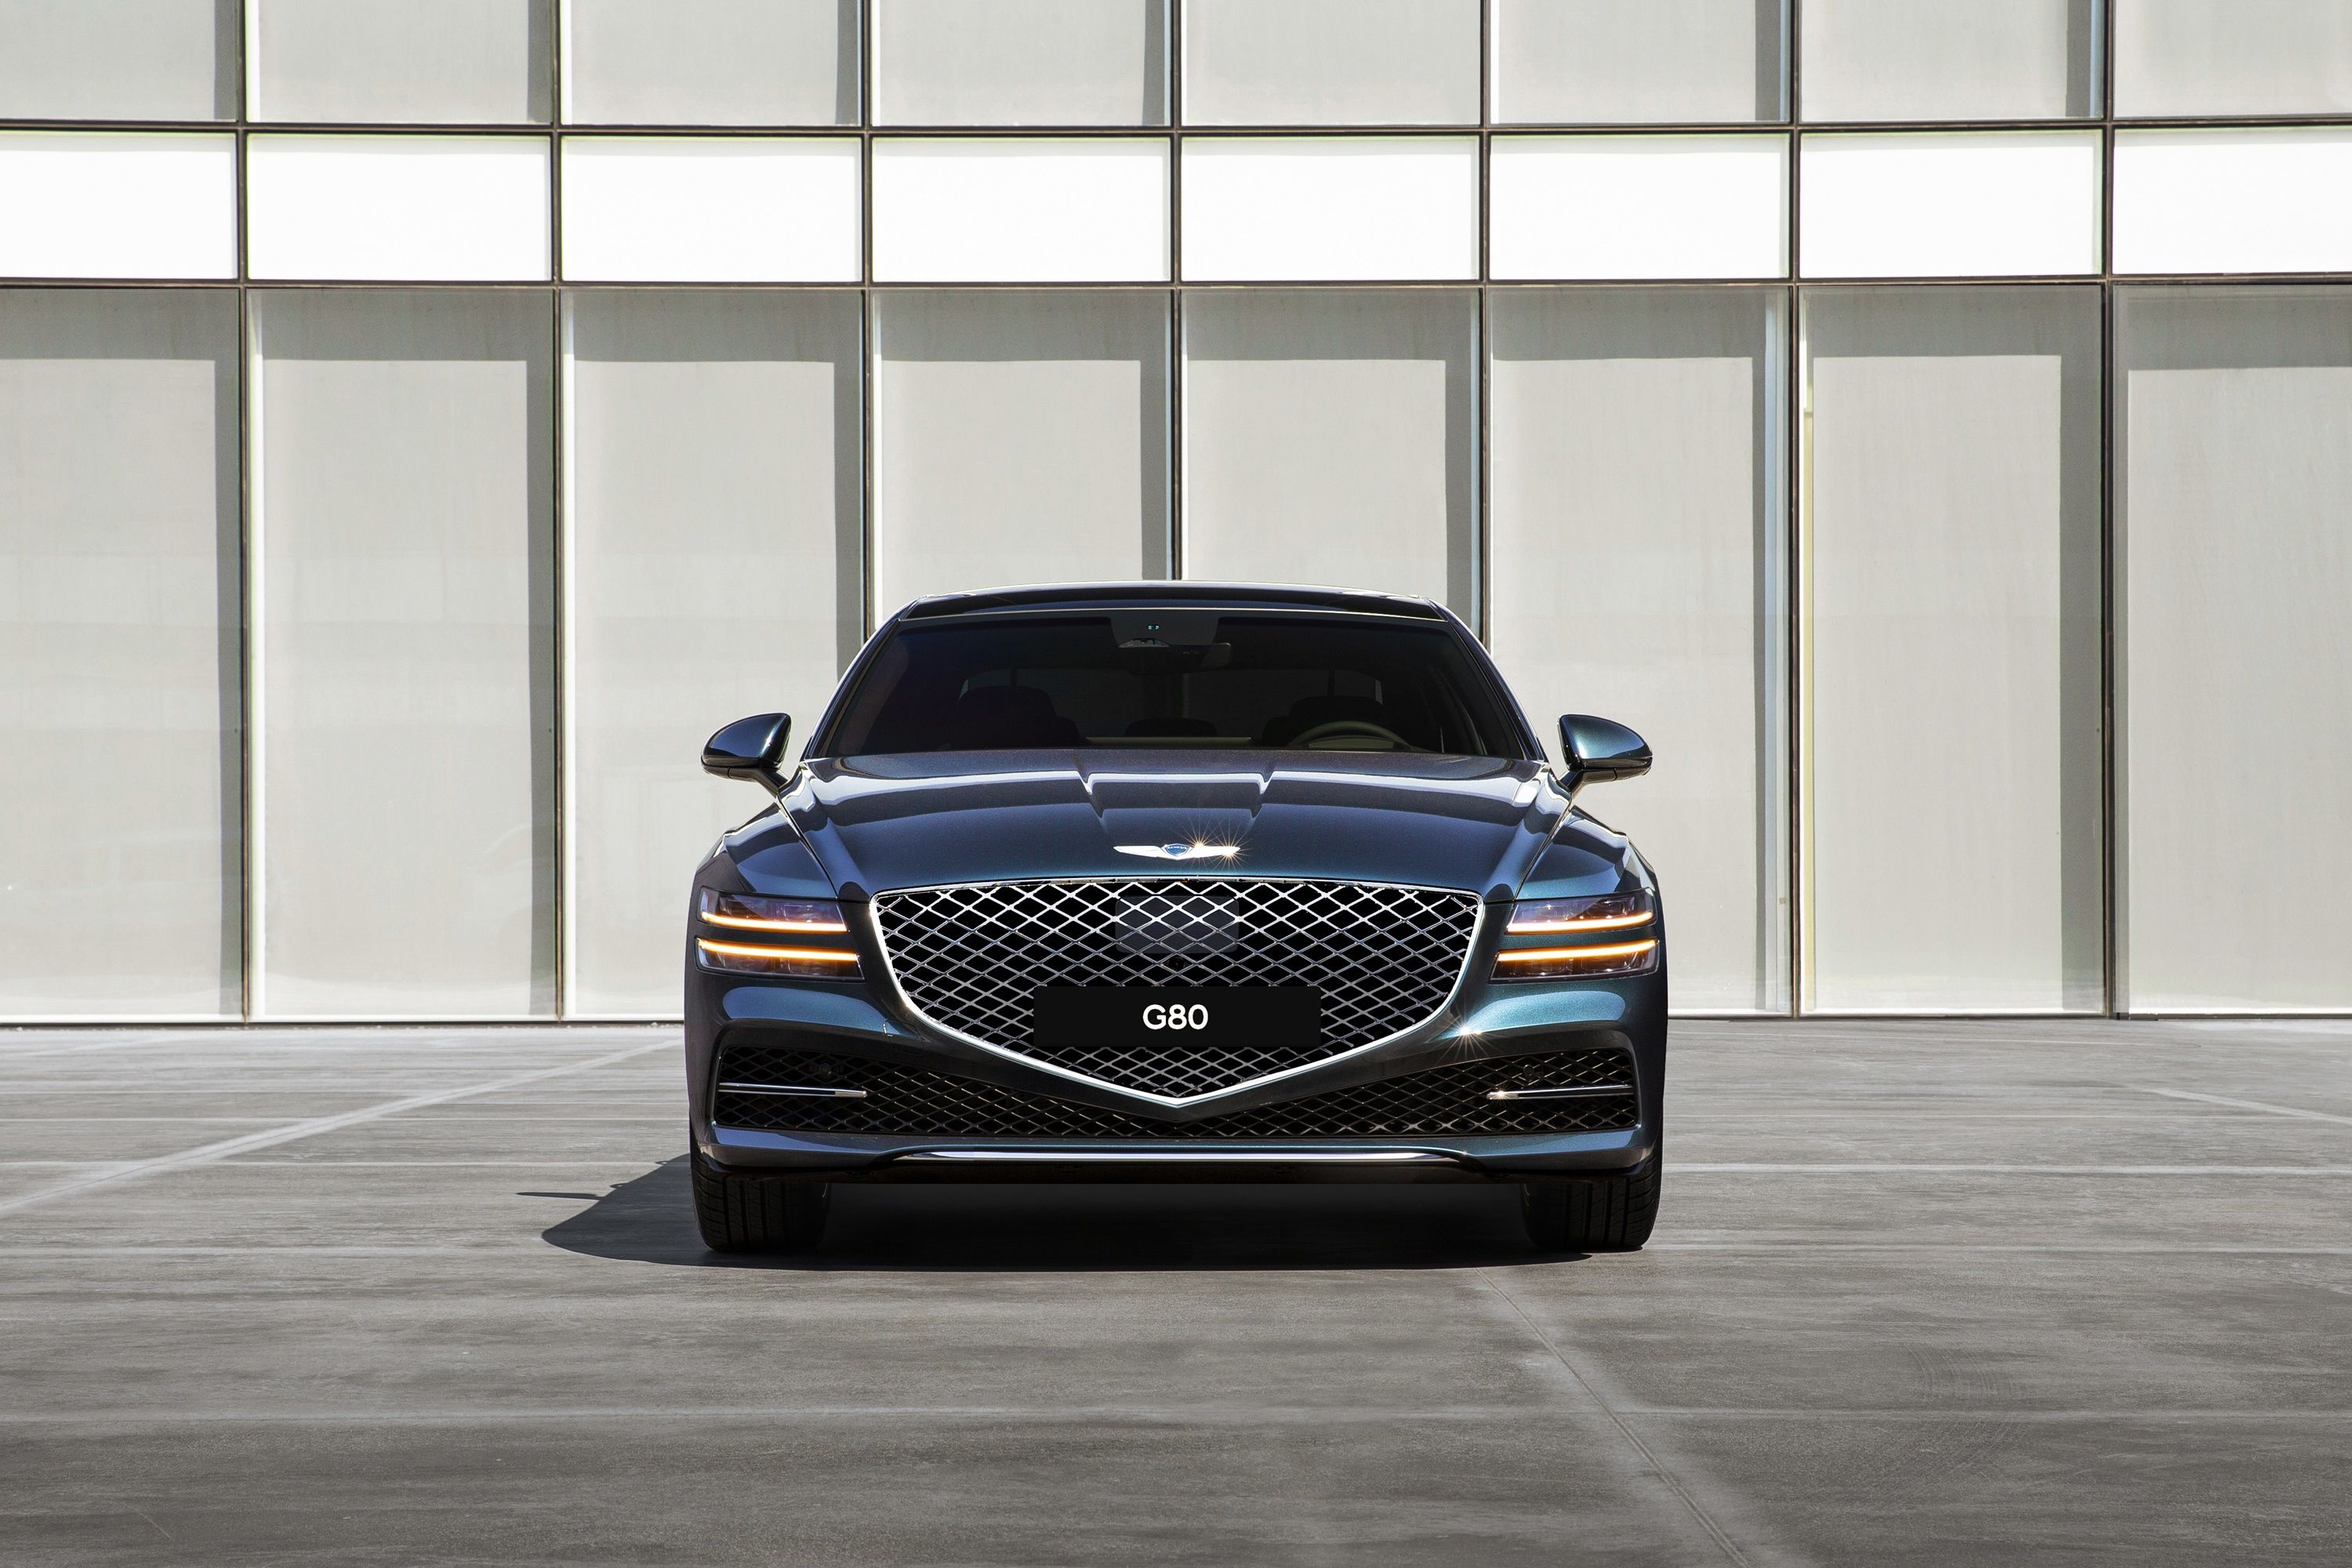 The G80 gets signature Genesis design elements which include high-tech quad headlights and a crested grille that emphasises seriousness consistent with the positioning of the G80.